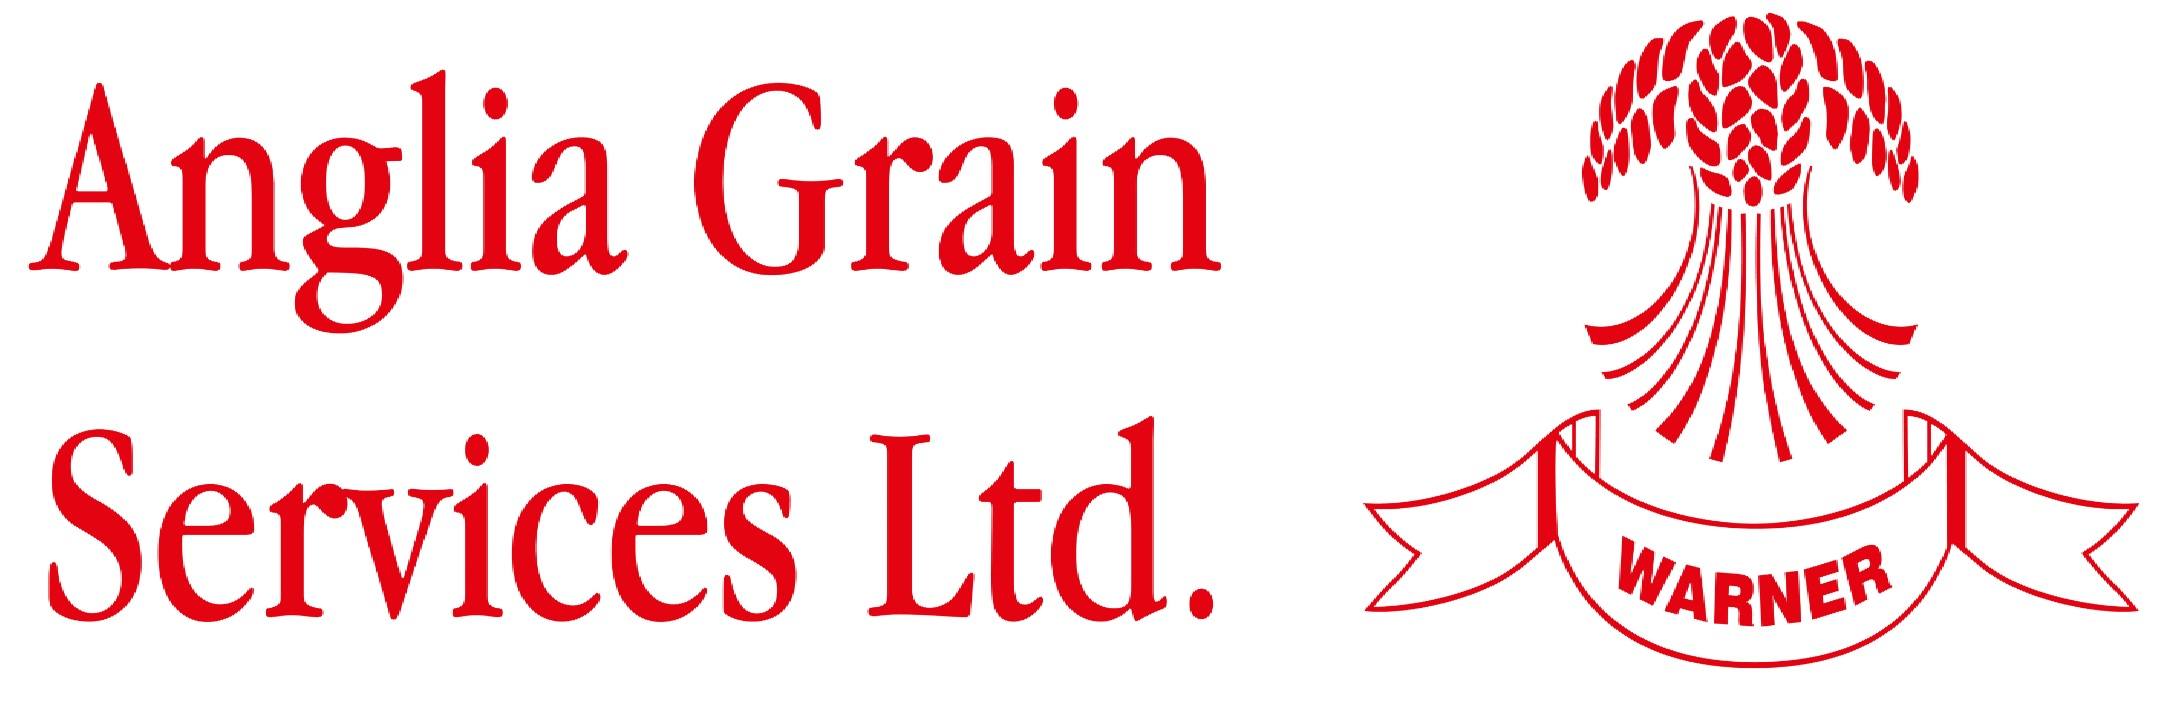 Ags Logistics Pvt Ltd seed - frontier agriculture